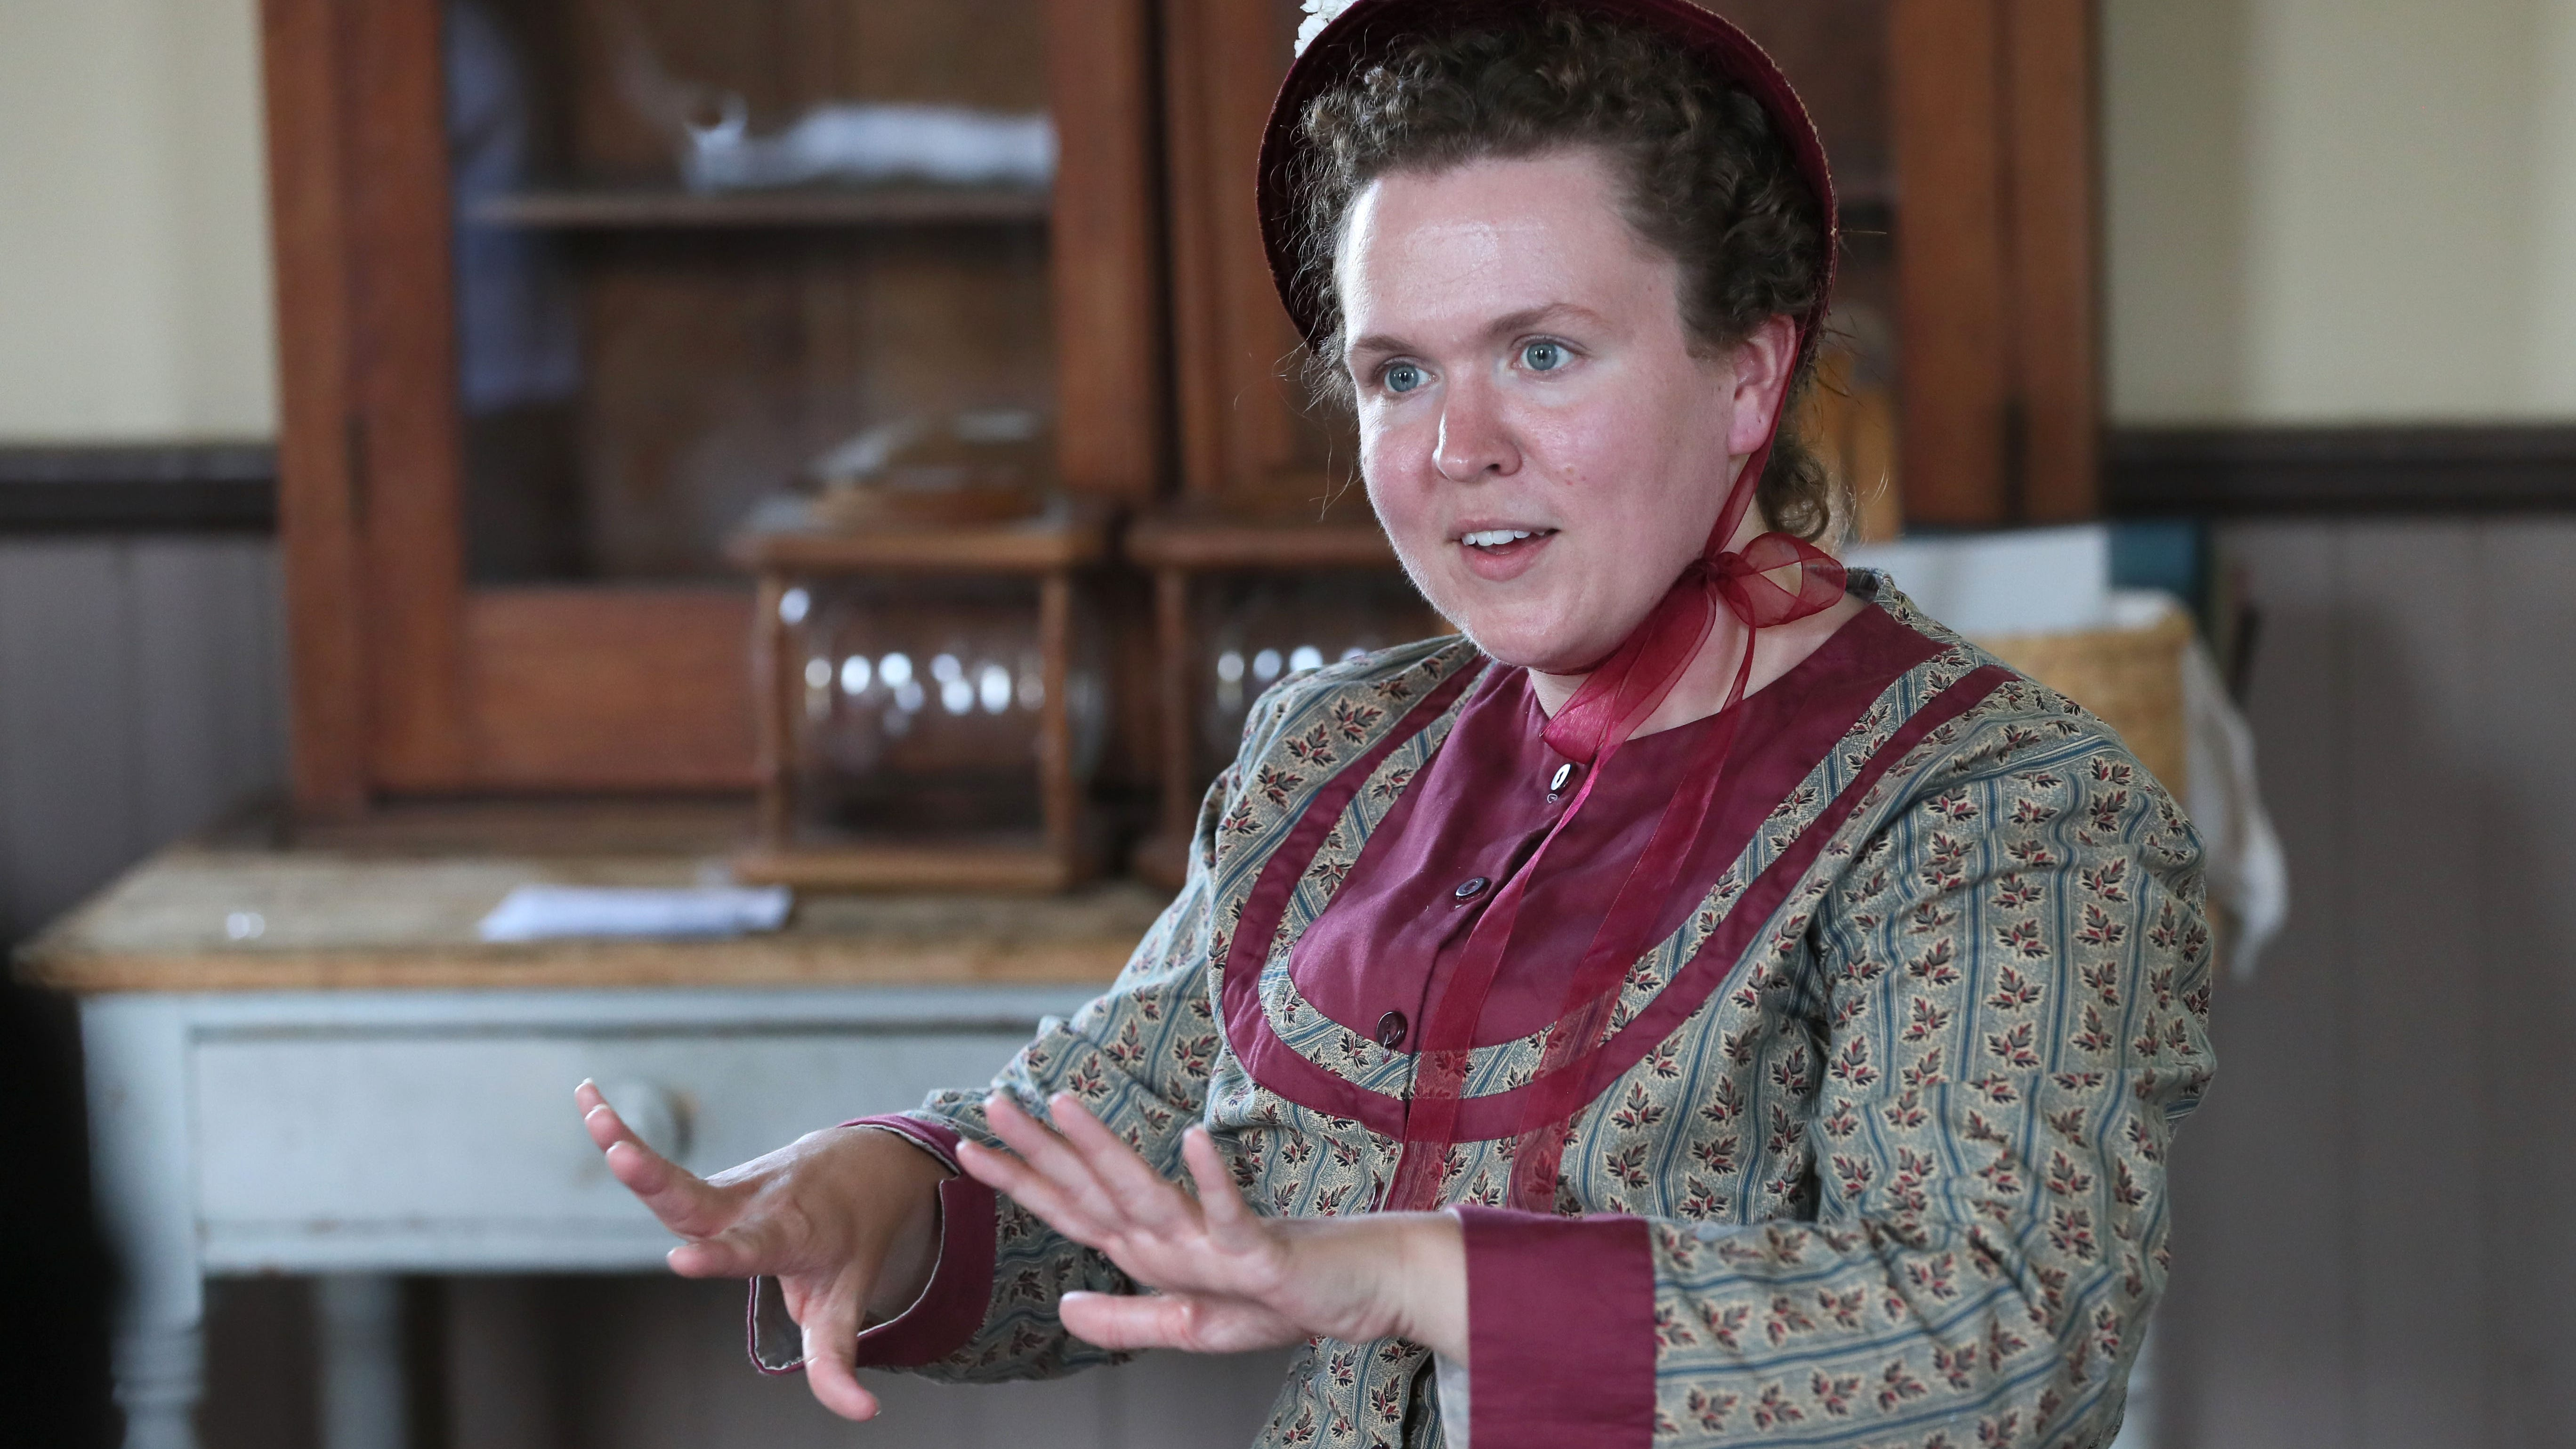 Old World Wisconsin visitors journey to 1843 through stories of immigrants